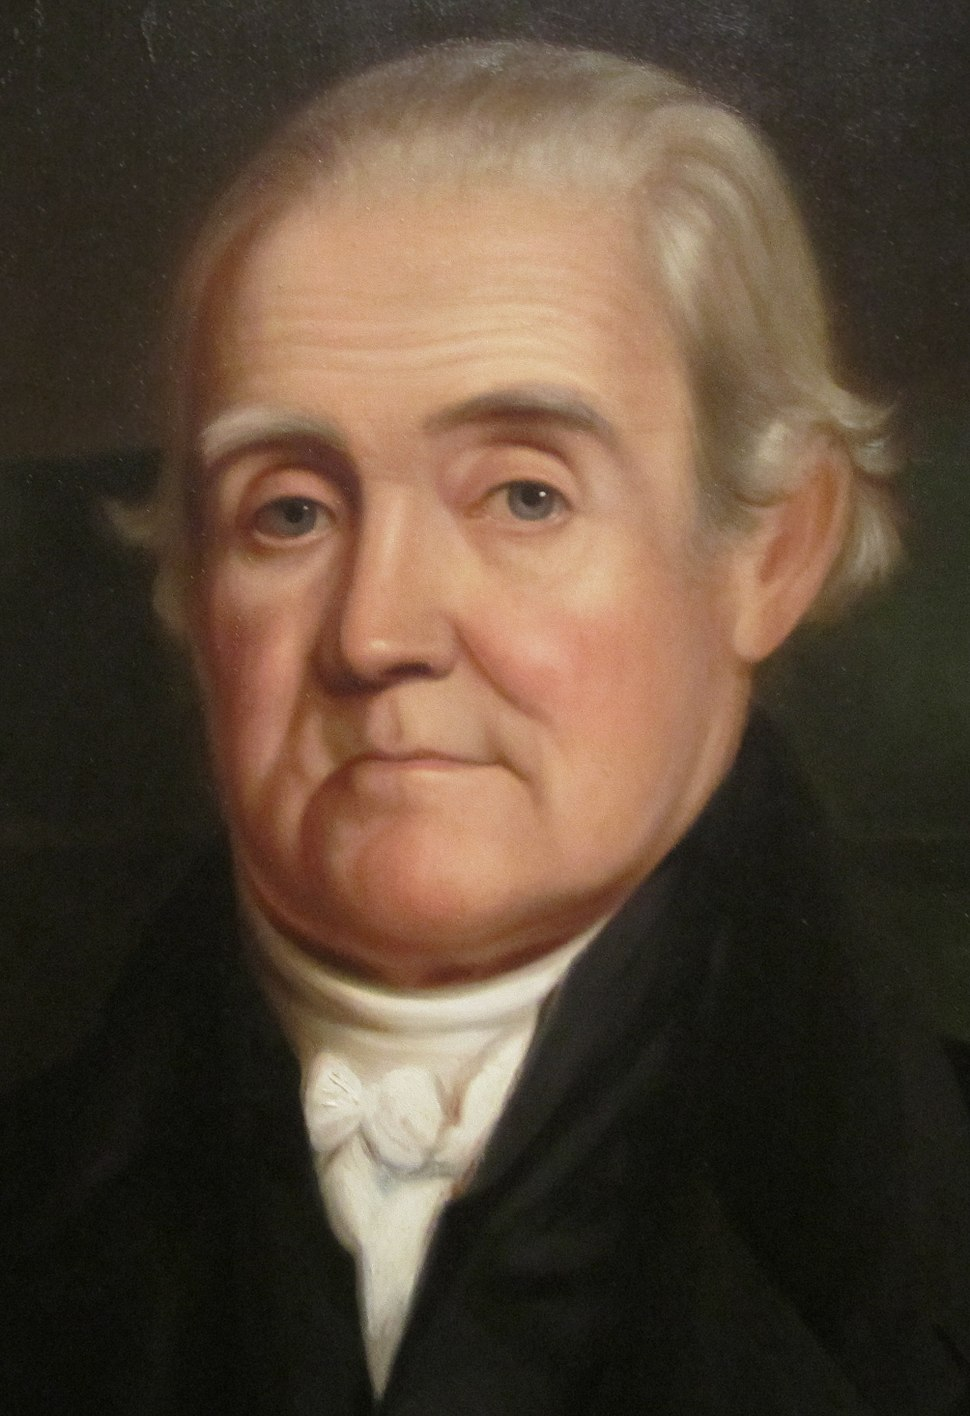 Noah Webster pre-1843 IMG 4412 Cropped